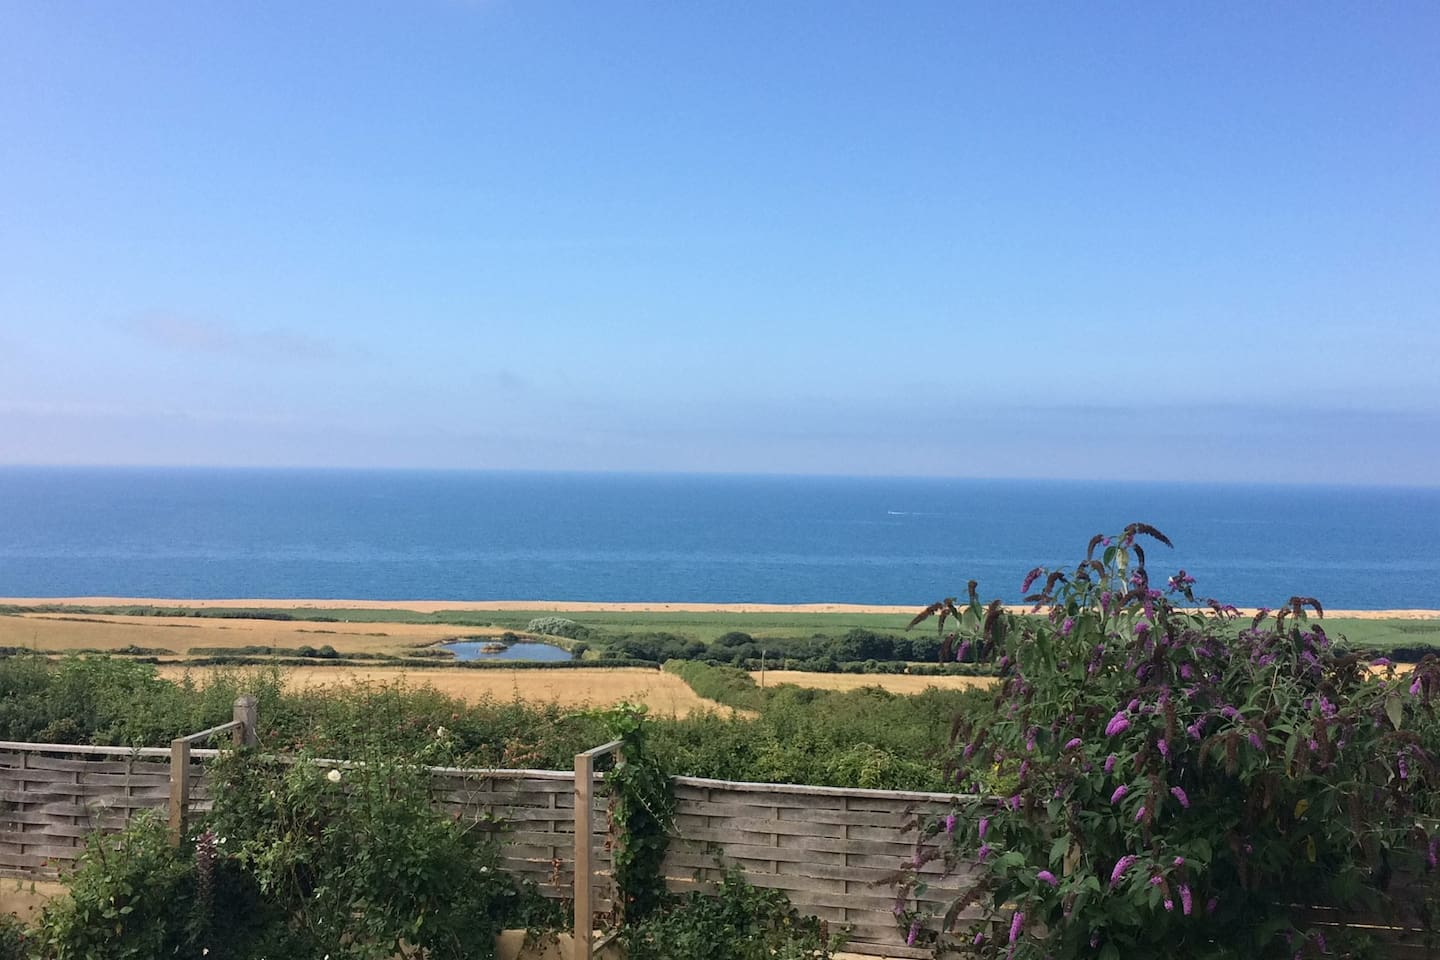 Views of the Chesil Beach from your room. A ten minute walk down to the beach and the South West Coast Path.